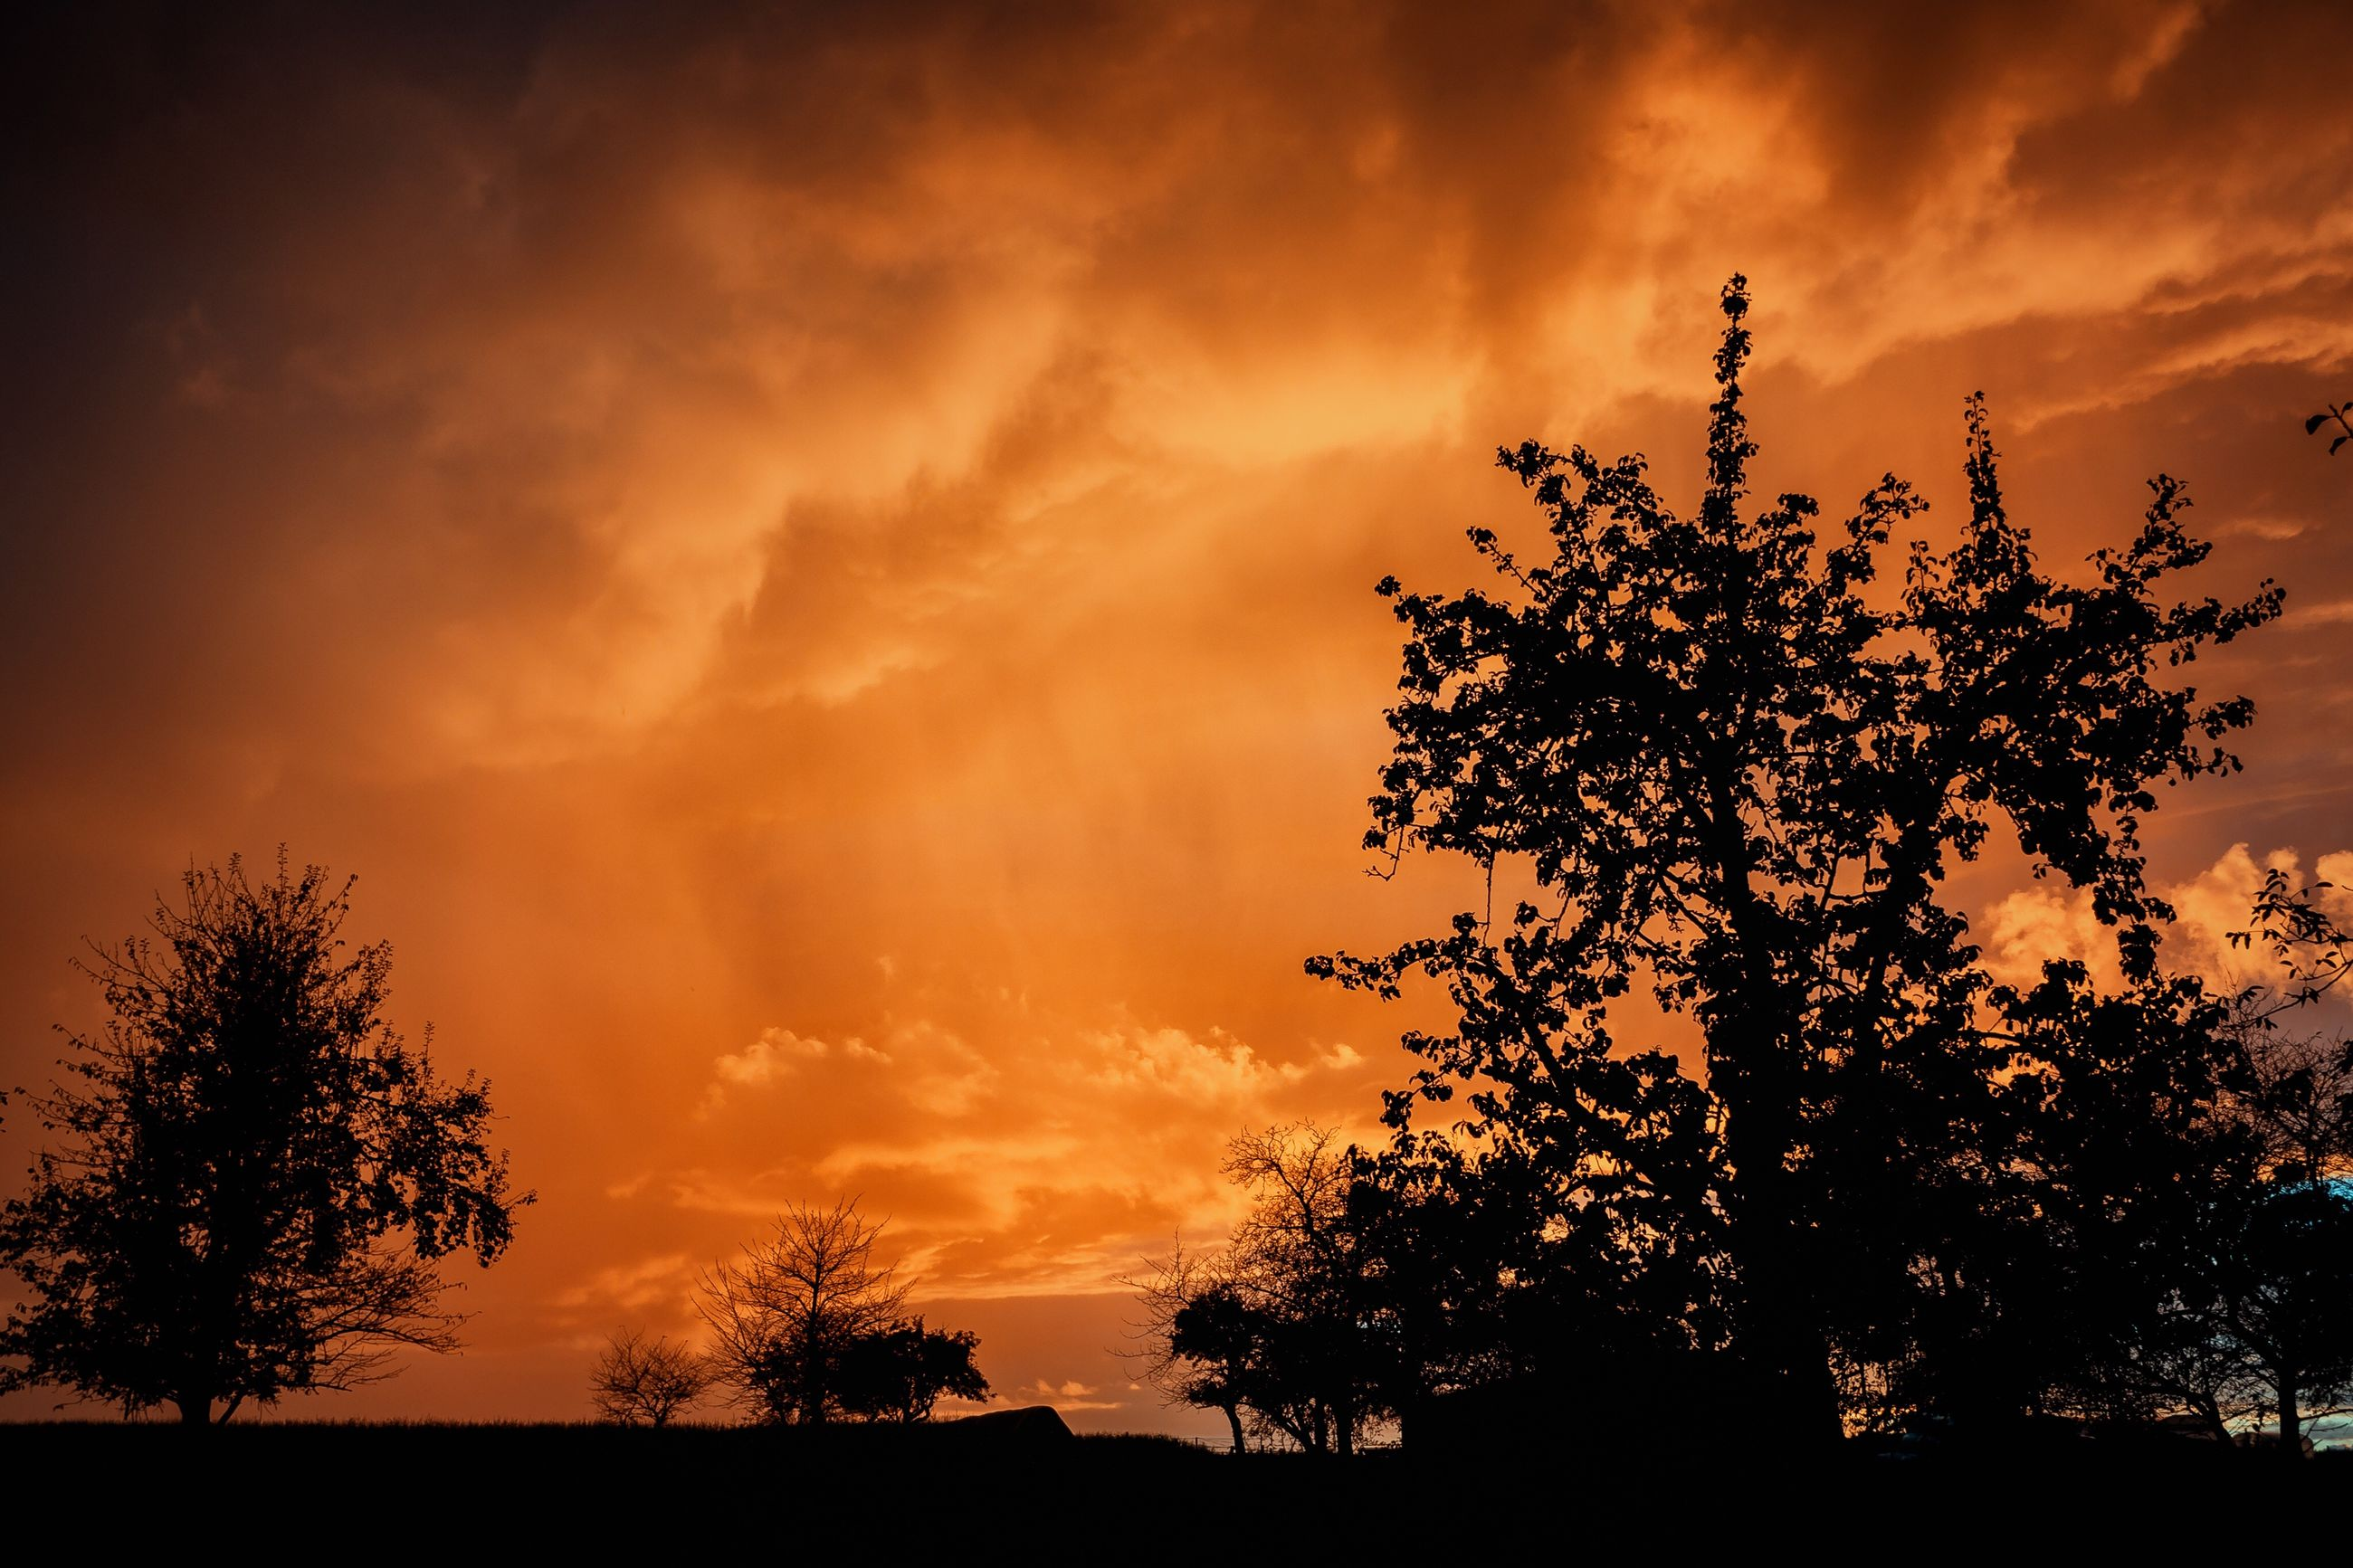 tree, silhouette, sunset, scenics, tranquil scene, beauty in nature, cloud - sky, sky, tranquility, growth, nature, cloudy, orange color, majestic, dramatic sky, field, atmospheric mood, outdoors, cloud, atmosphere, non-urban scene, dark, cloudscape, storm cloud, outline, no people, solitude, back lit